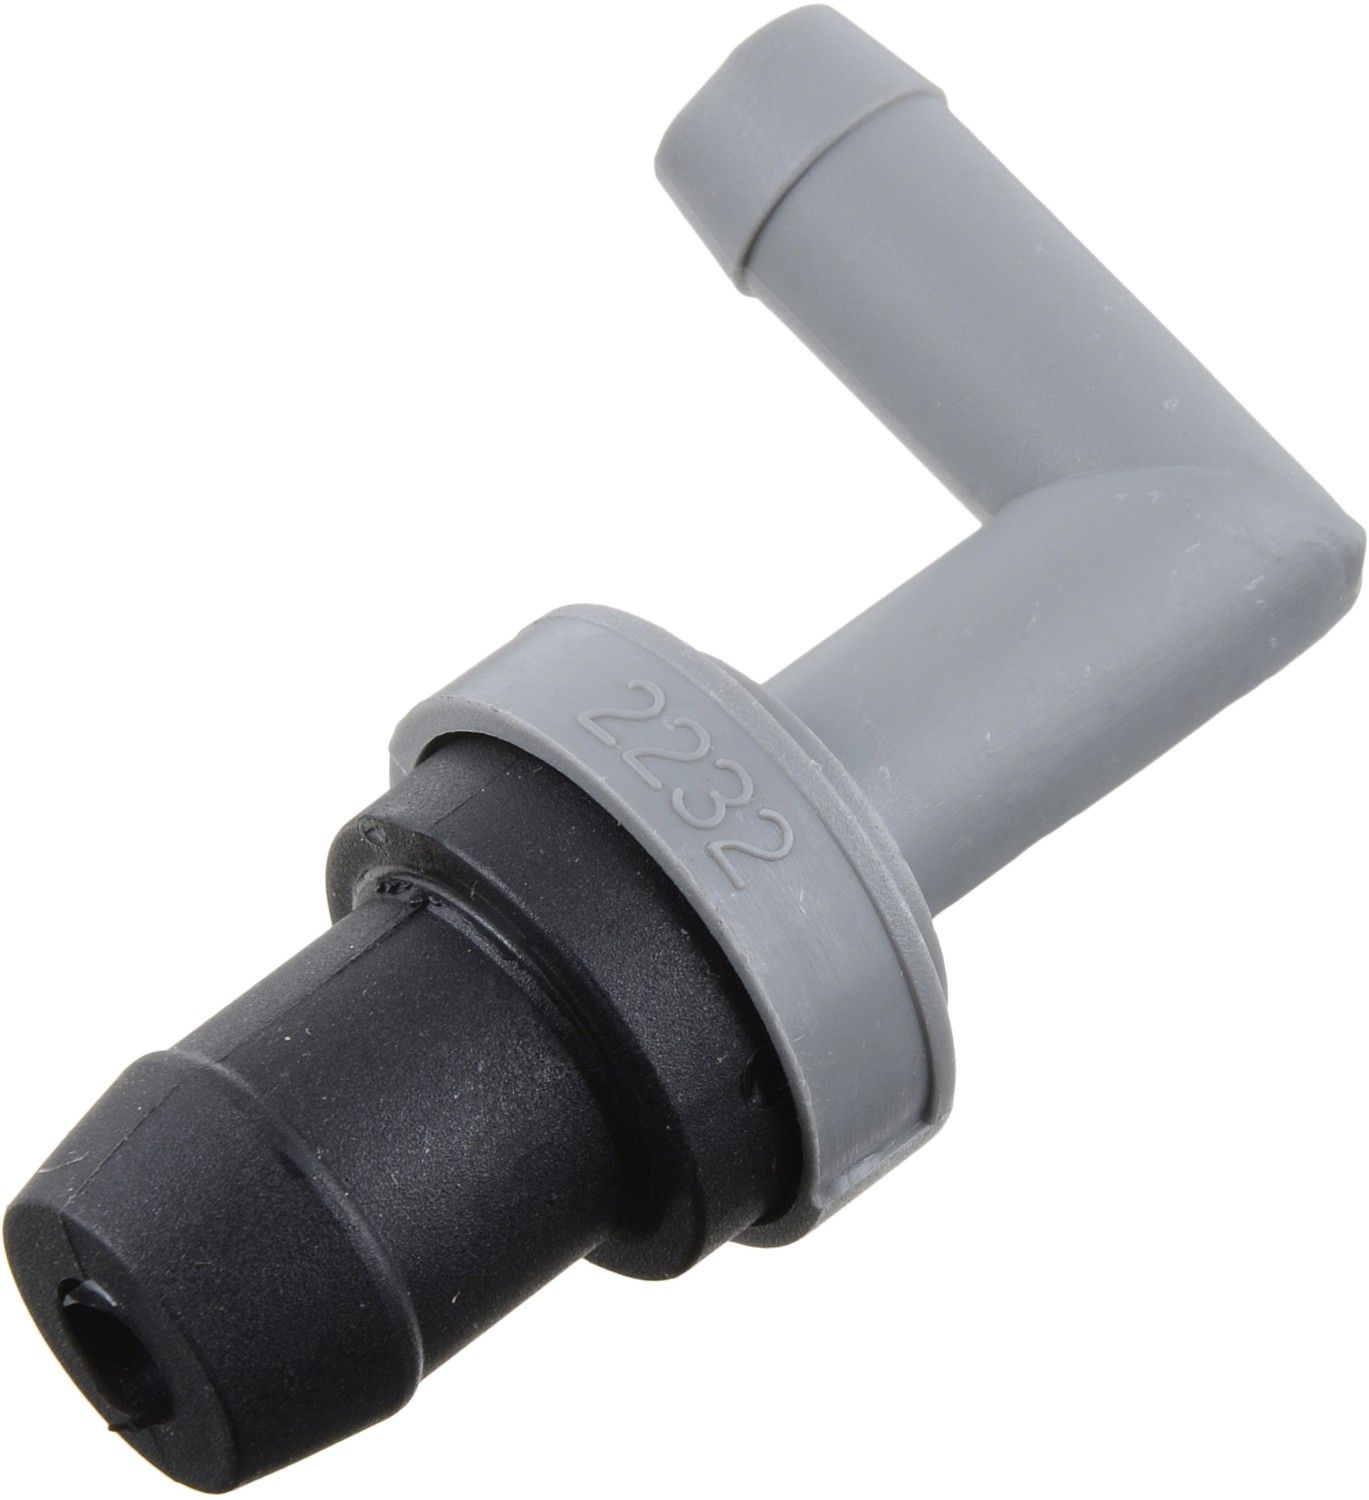 Pcv Valve Replacement Acdelco Apa Uro Parts Aisan Auto 7 Beck 2001 Toyota Corolla Location 1995 Paseo Fram Fv309 Except California Unit Box Product